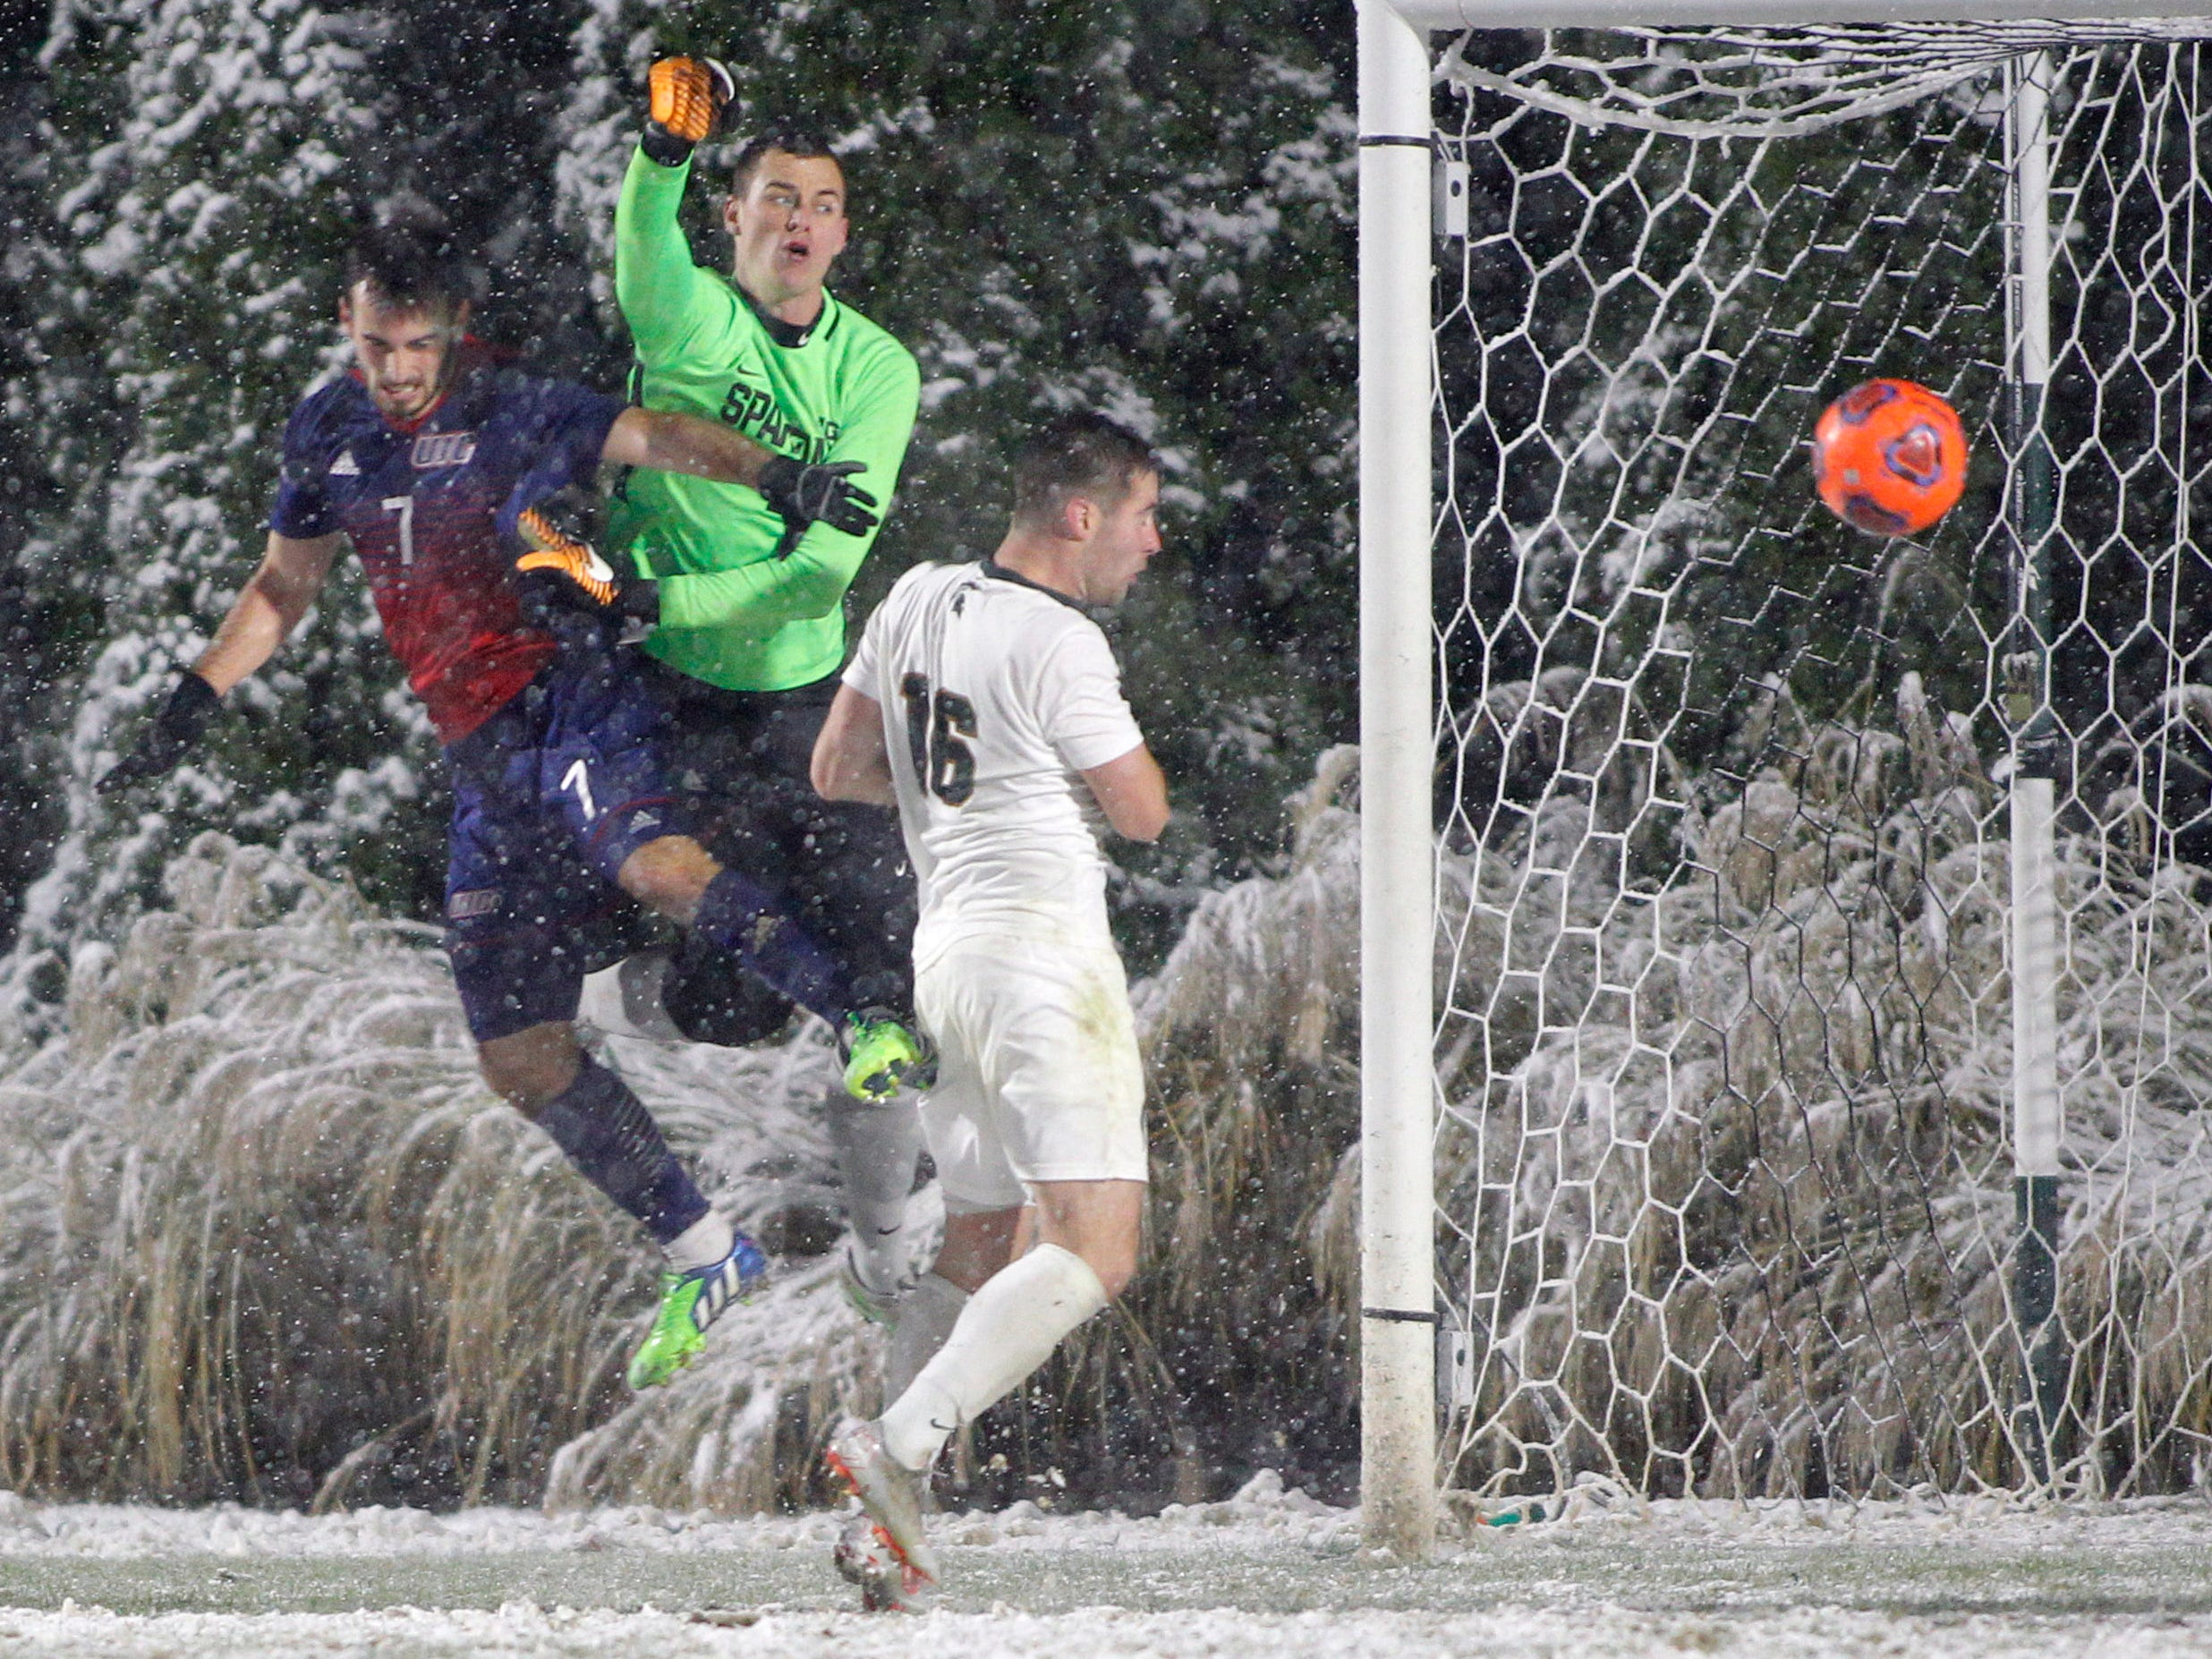 Illinois-Chicago's Max Todd, left, and Michigan State's Connor Corrigan (16) and goalkeeper Jimmy Hague battle near the goal during their NCAA first round game, Thursday, Nov. 15, 2018, at DeMartin Stadium in East Lansing, Mich. MSU won 2-0.